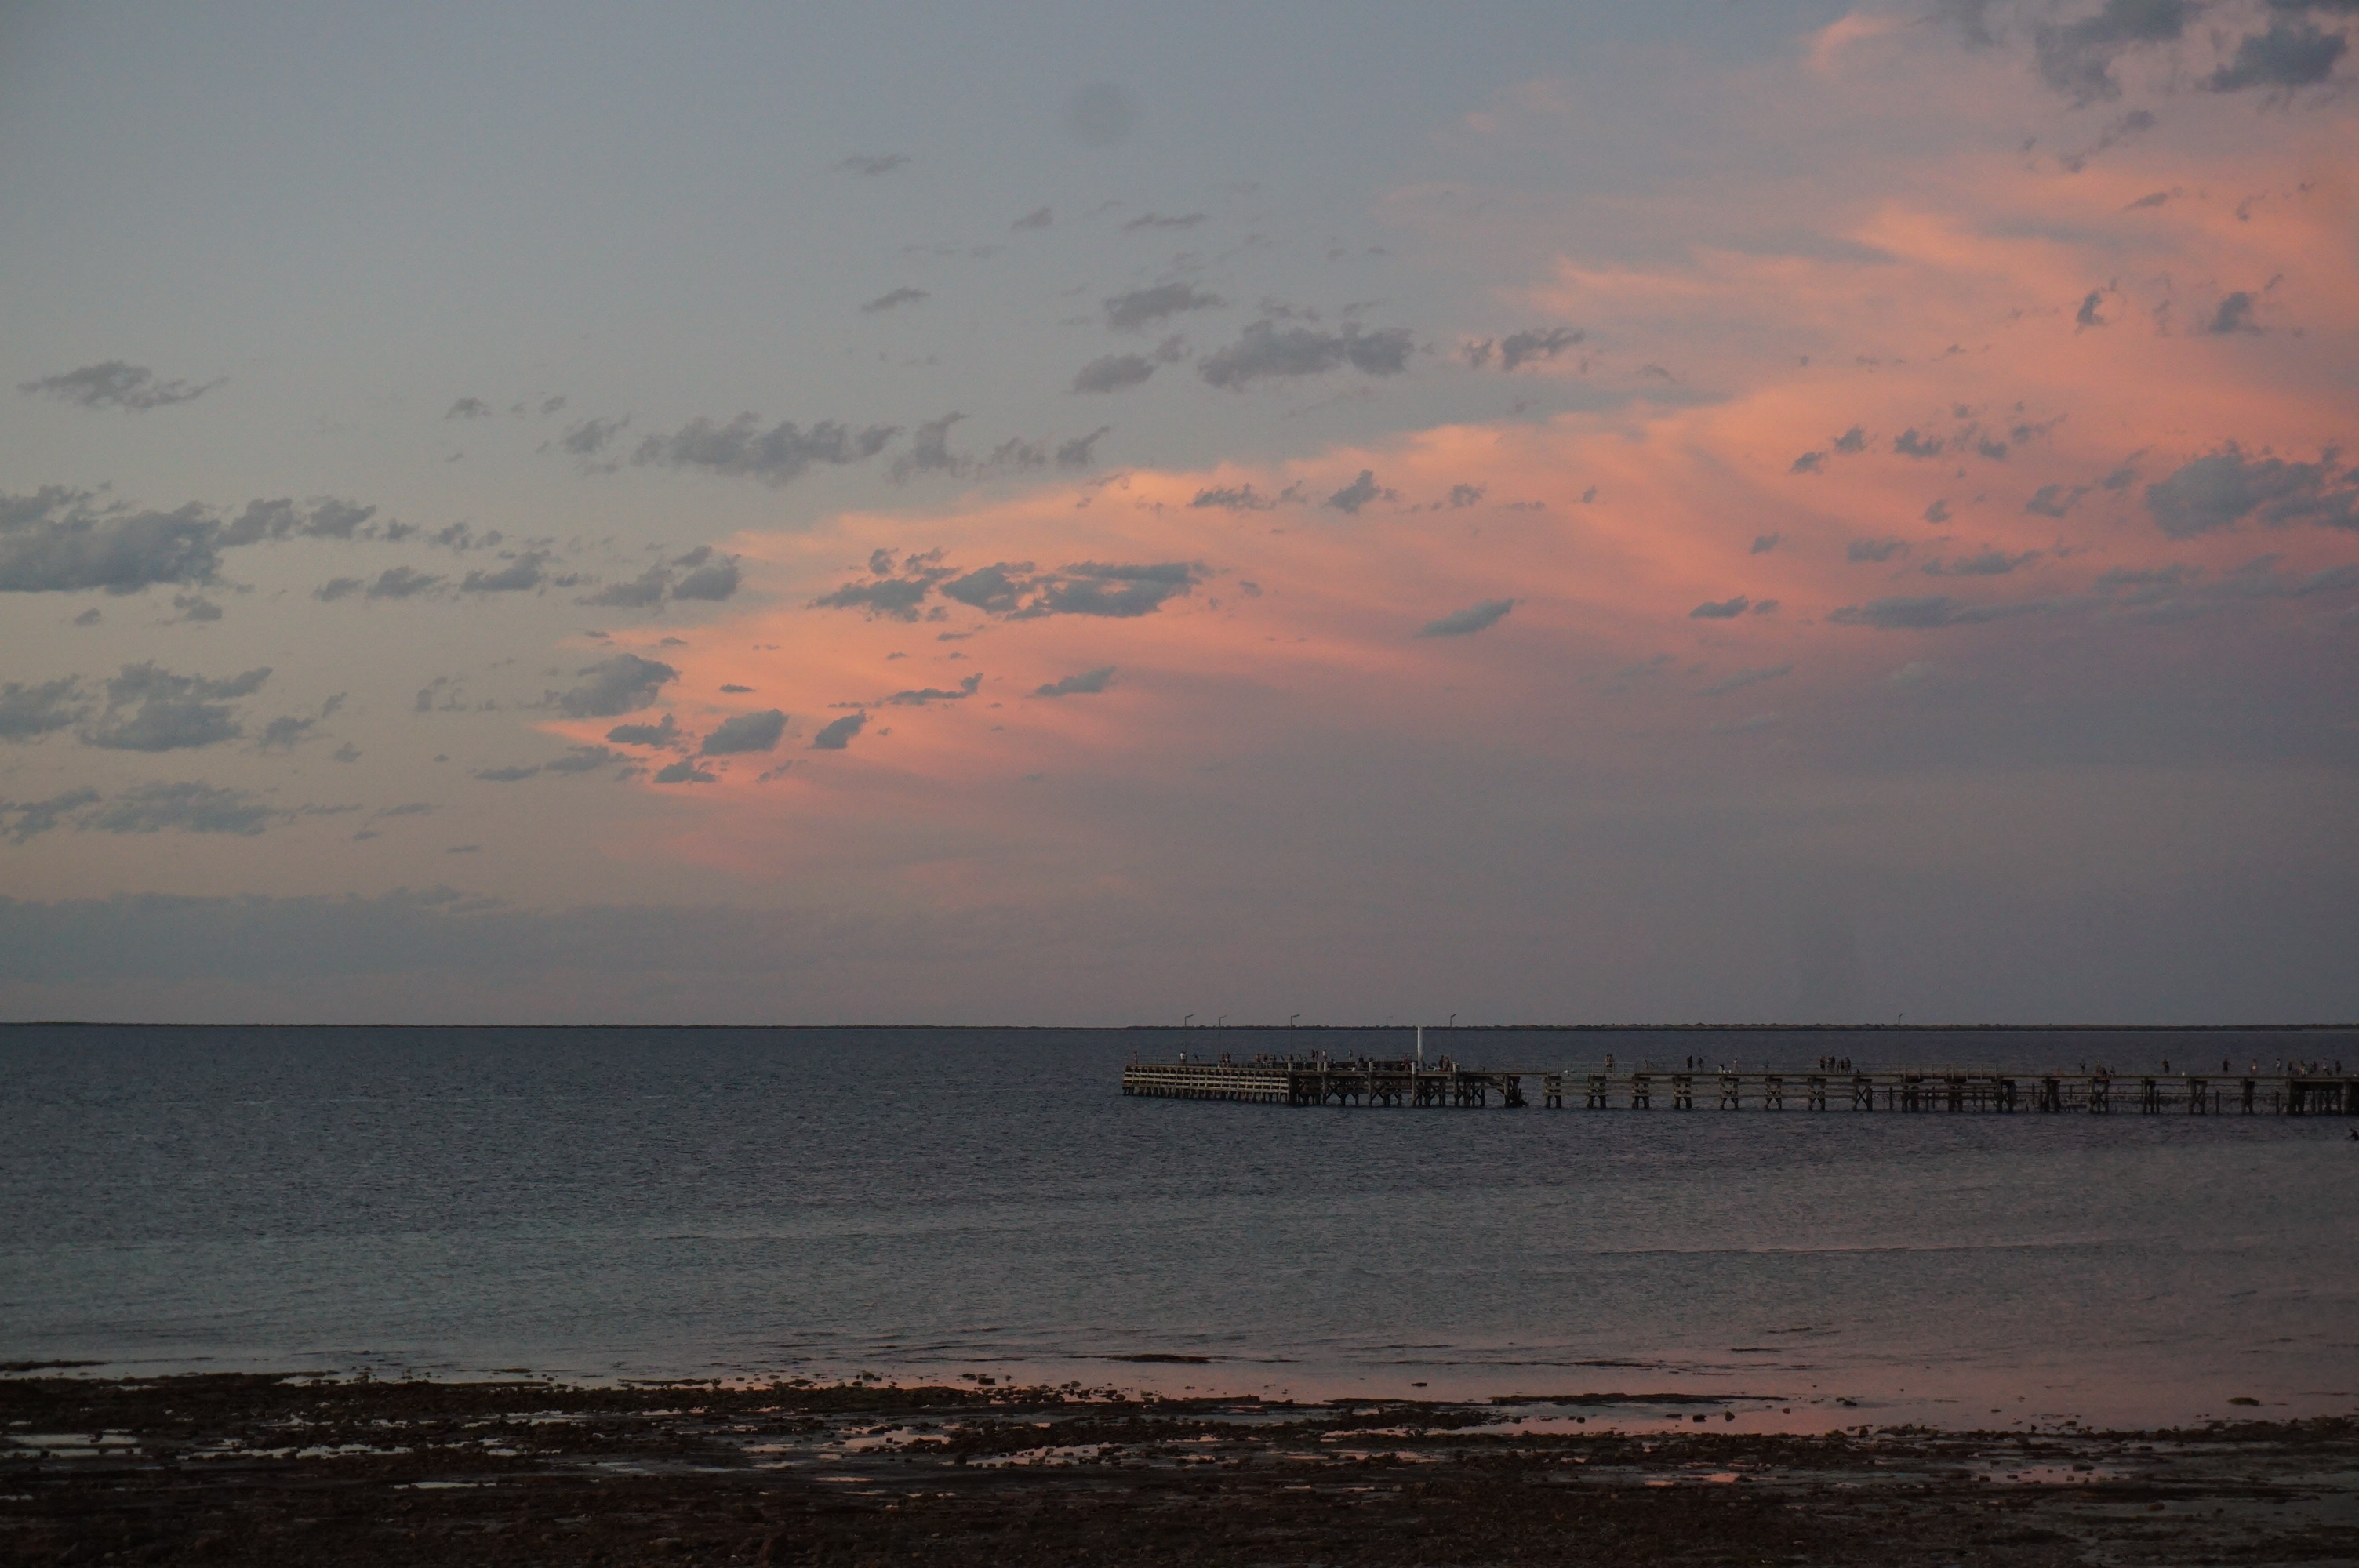 Fairy Floss Skies over the Jetty